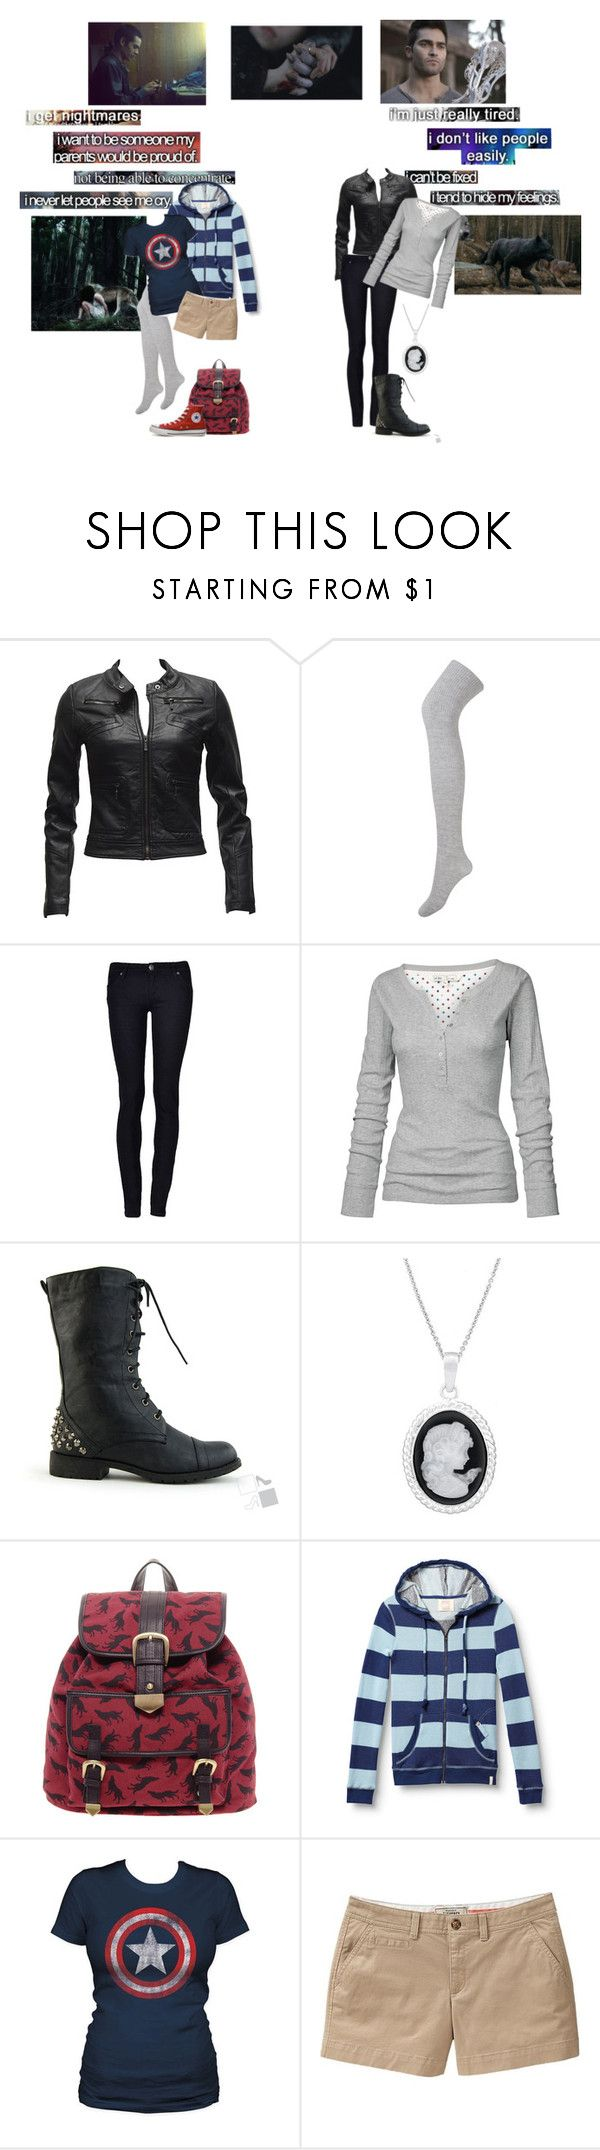 """Teen Wolf - I'm fine"" by majestaet ❤ liked on Polyvore featuring Tremp, Forever 21, Fat Face, ASOS, Quiksilver, Marvel Comics, Old Navy, Converse, Wolf & Man and werewolf"